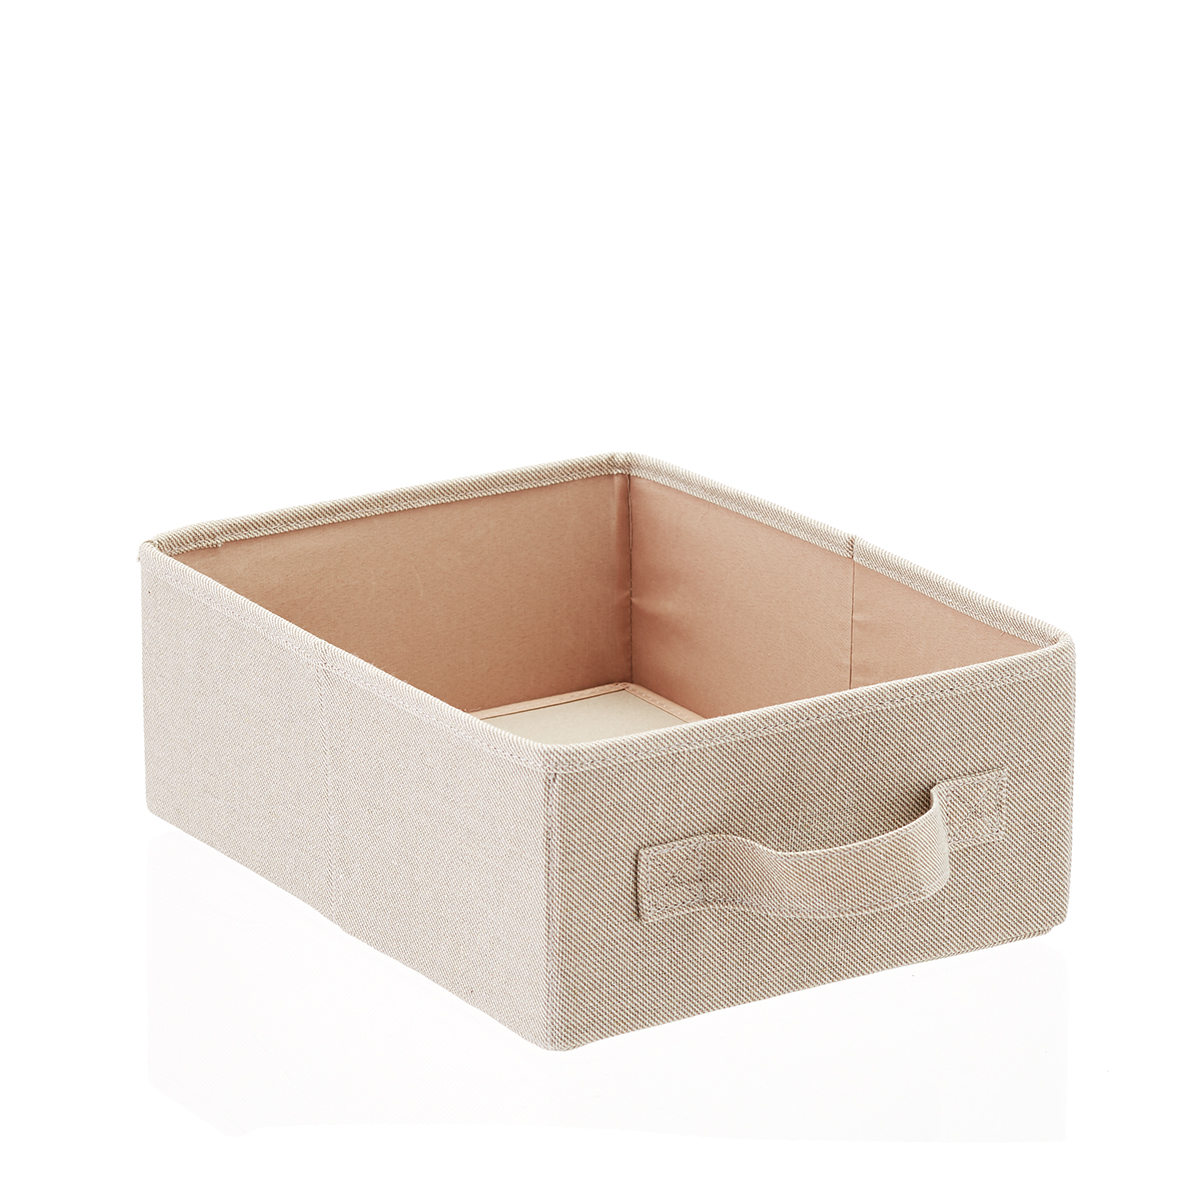 Taupe 10-Compartment Hanging Shoe Organizer Drawer